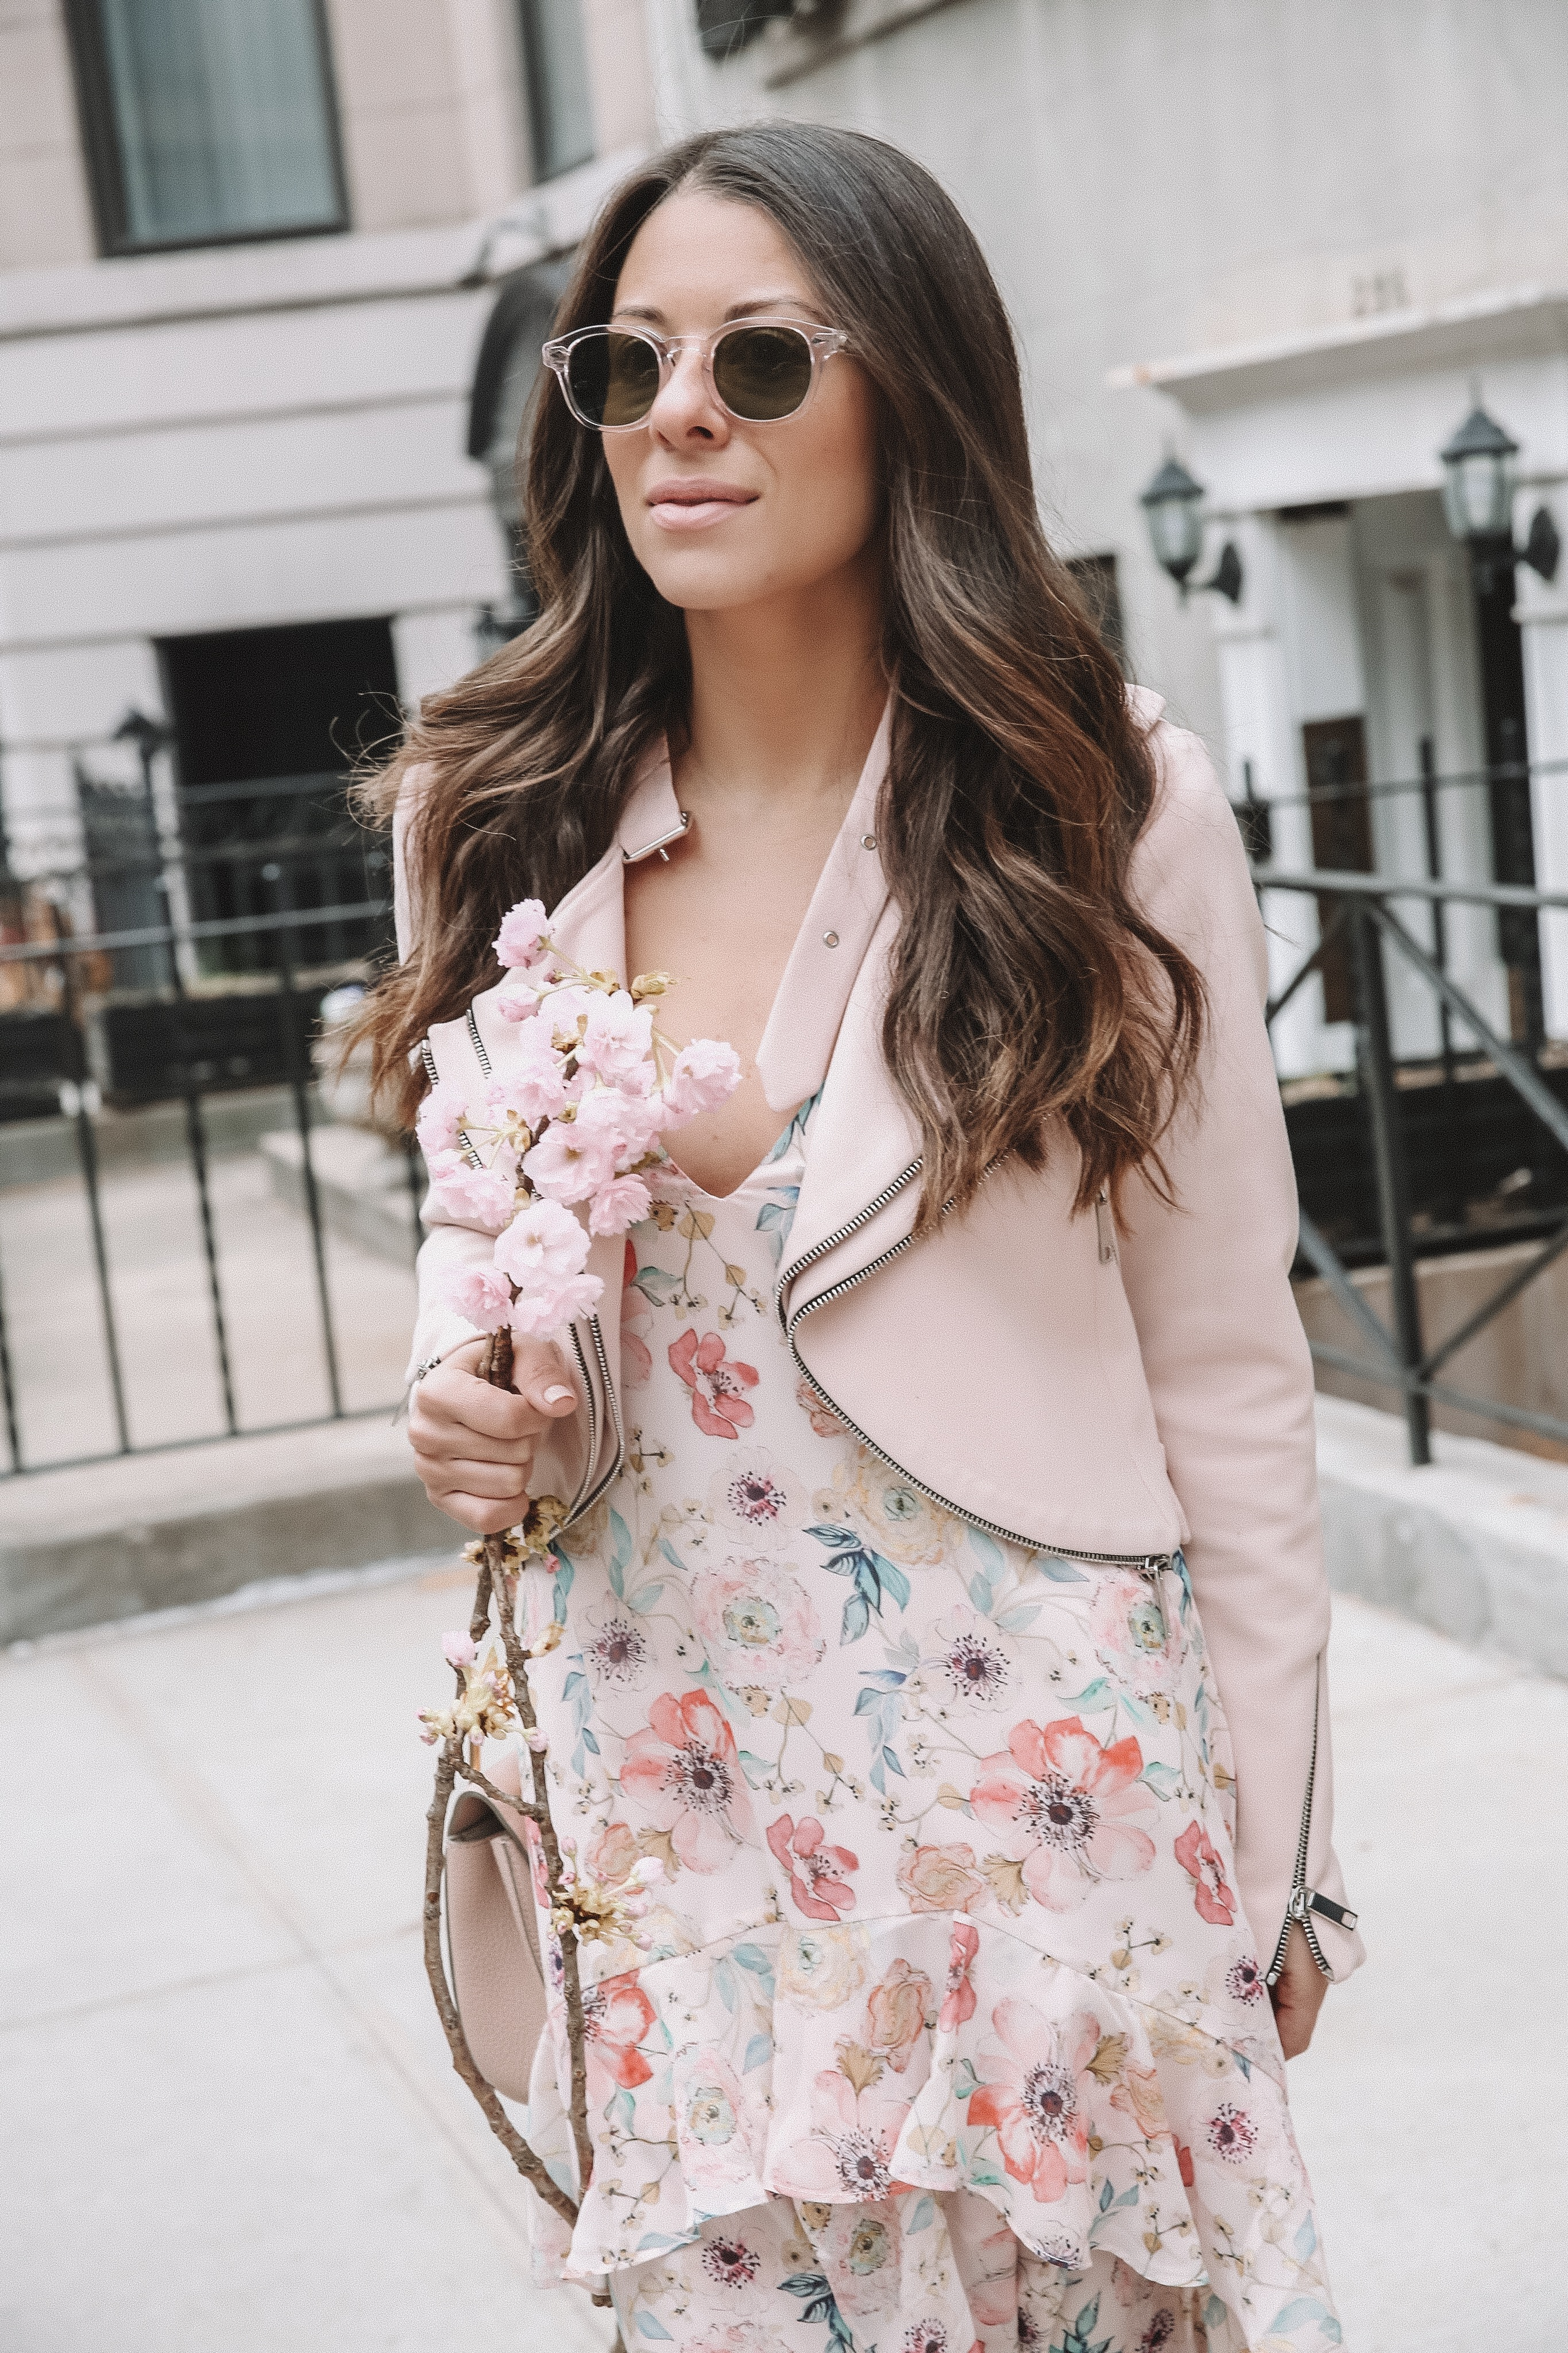 225b4867cd52c Spring is here and I m so excited to finalllly come out of hibernation and  share some of my new favorite pieces!! I recently did a major Forever 21  shop and ...